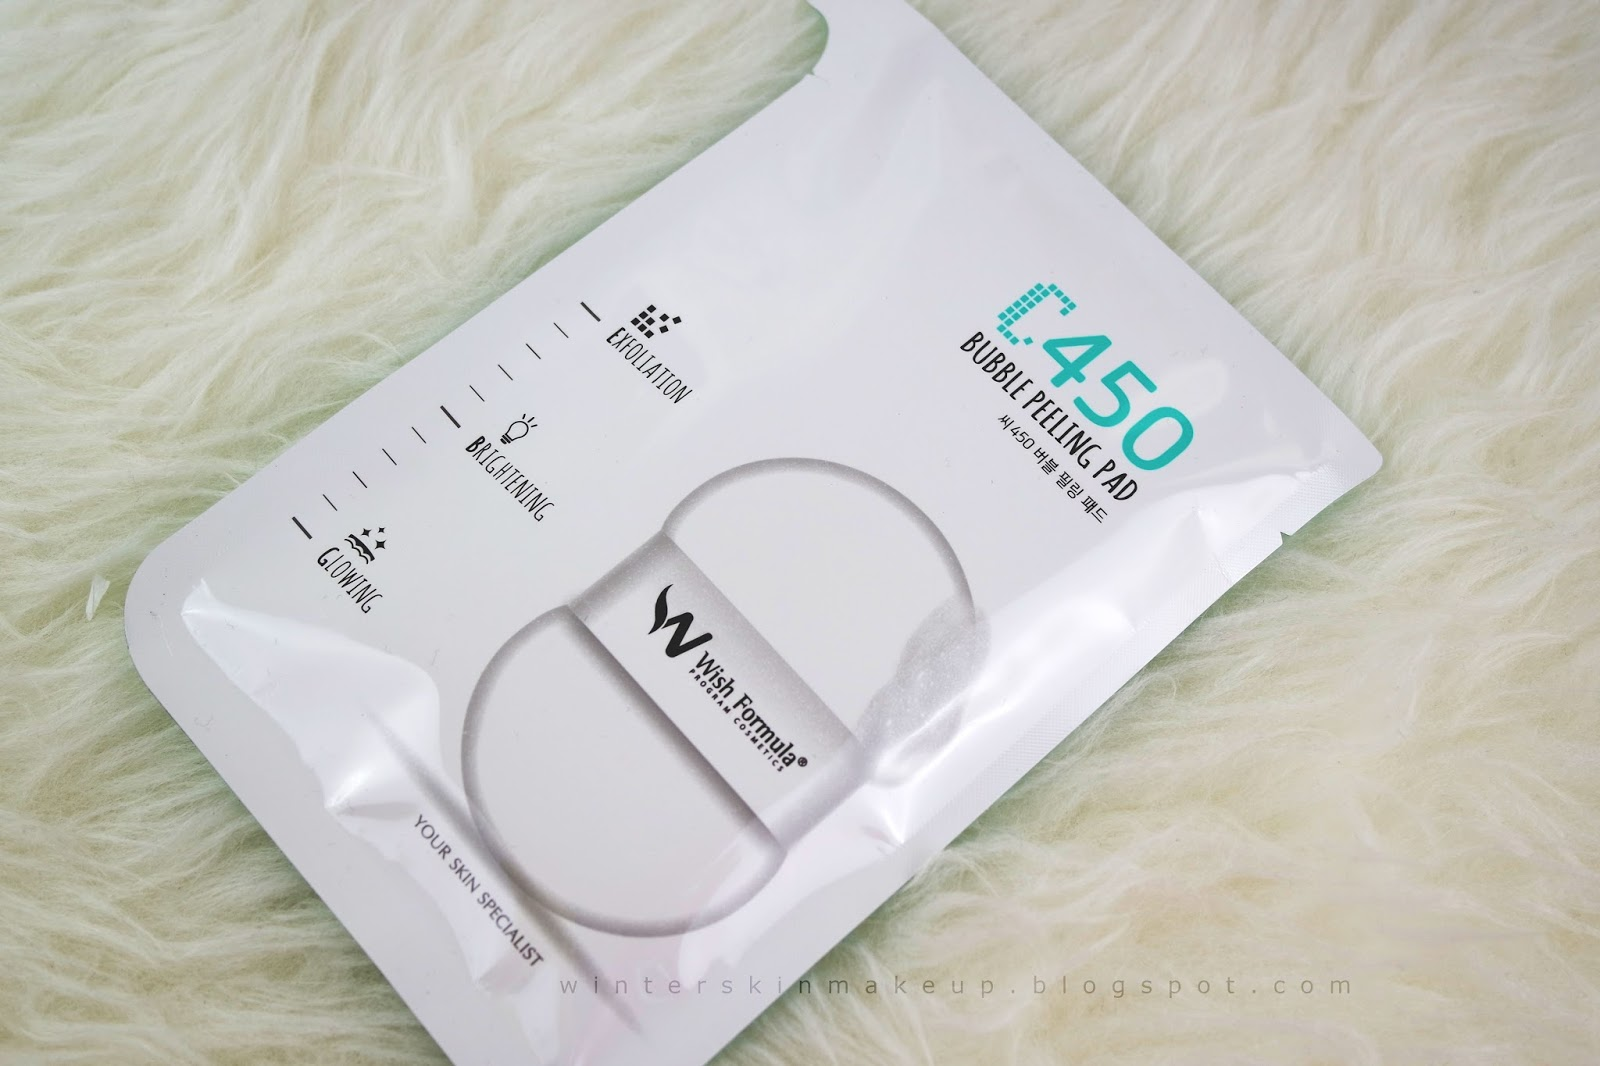 C450 Bubble Peeling Pad for Body